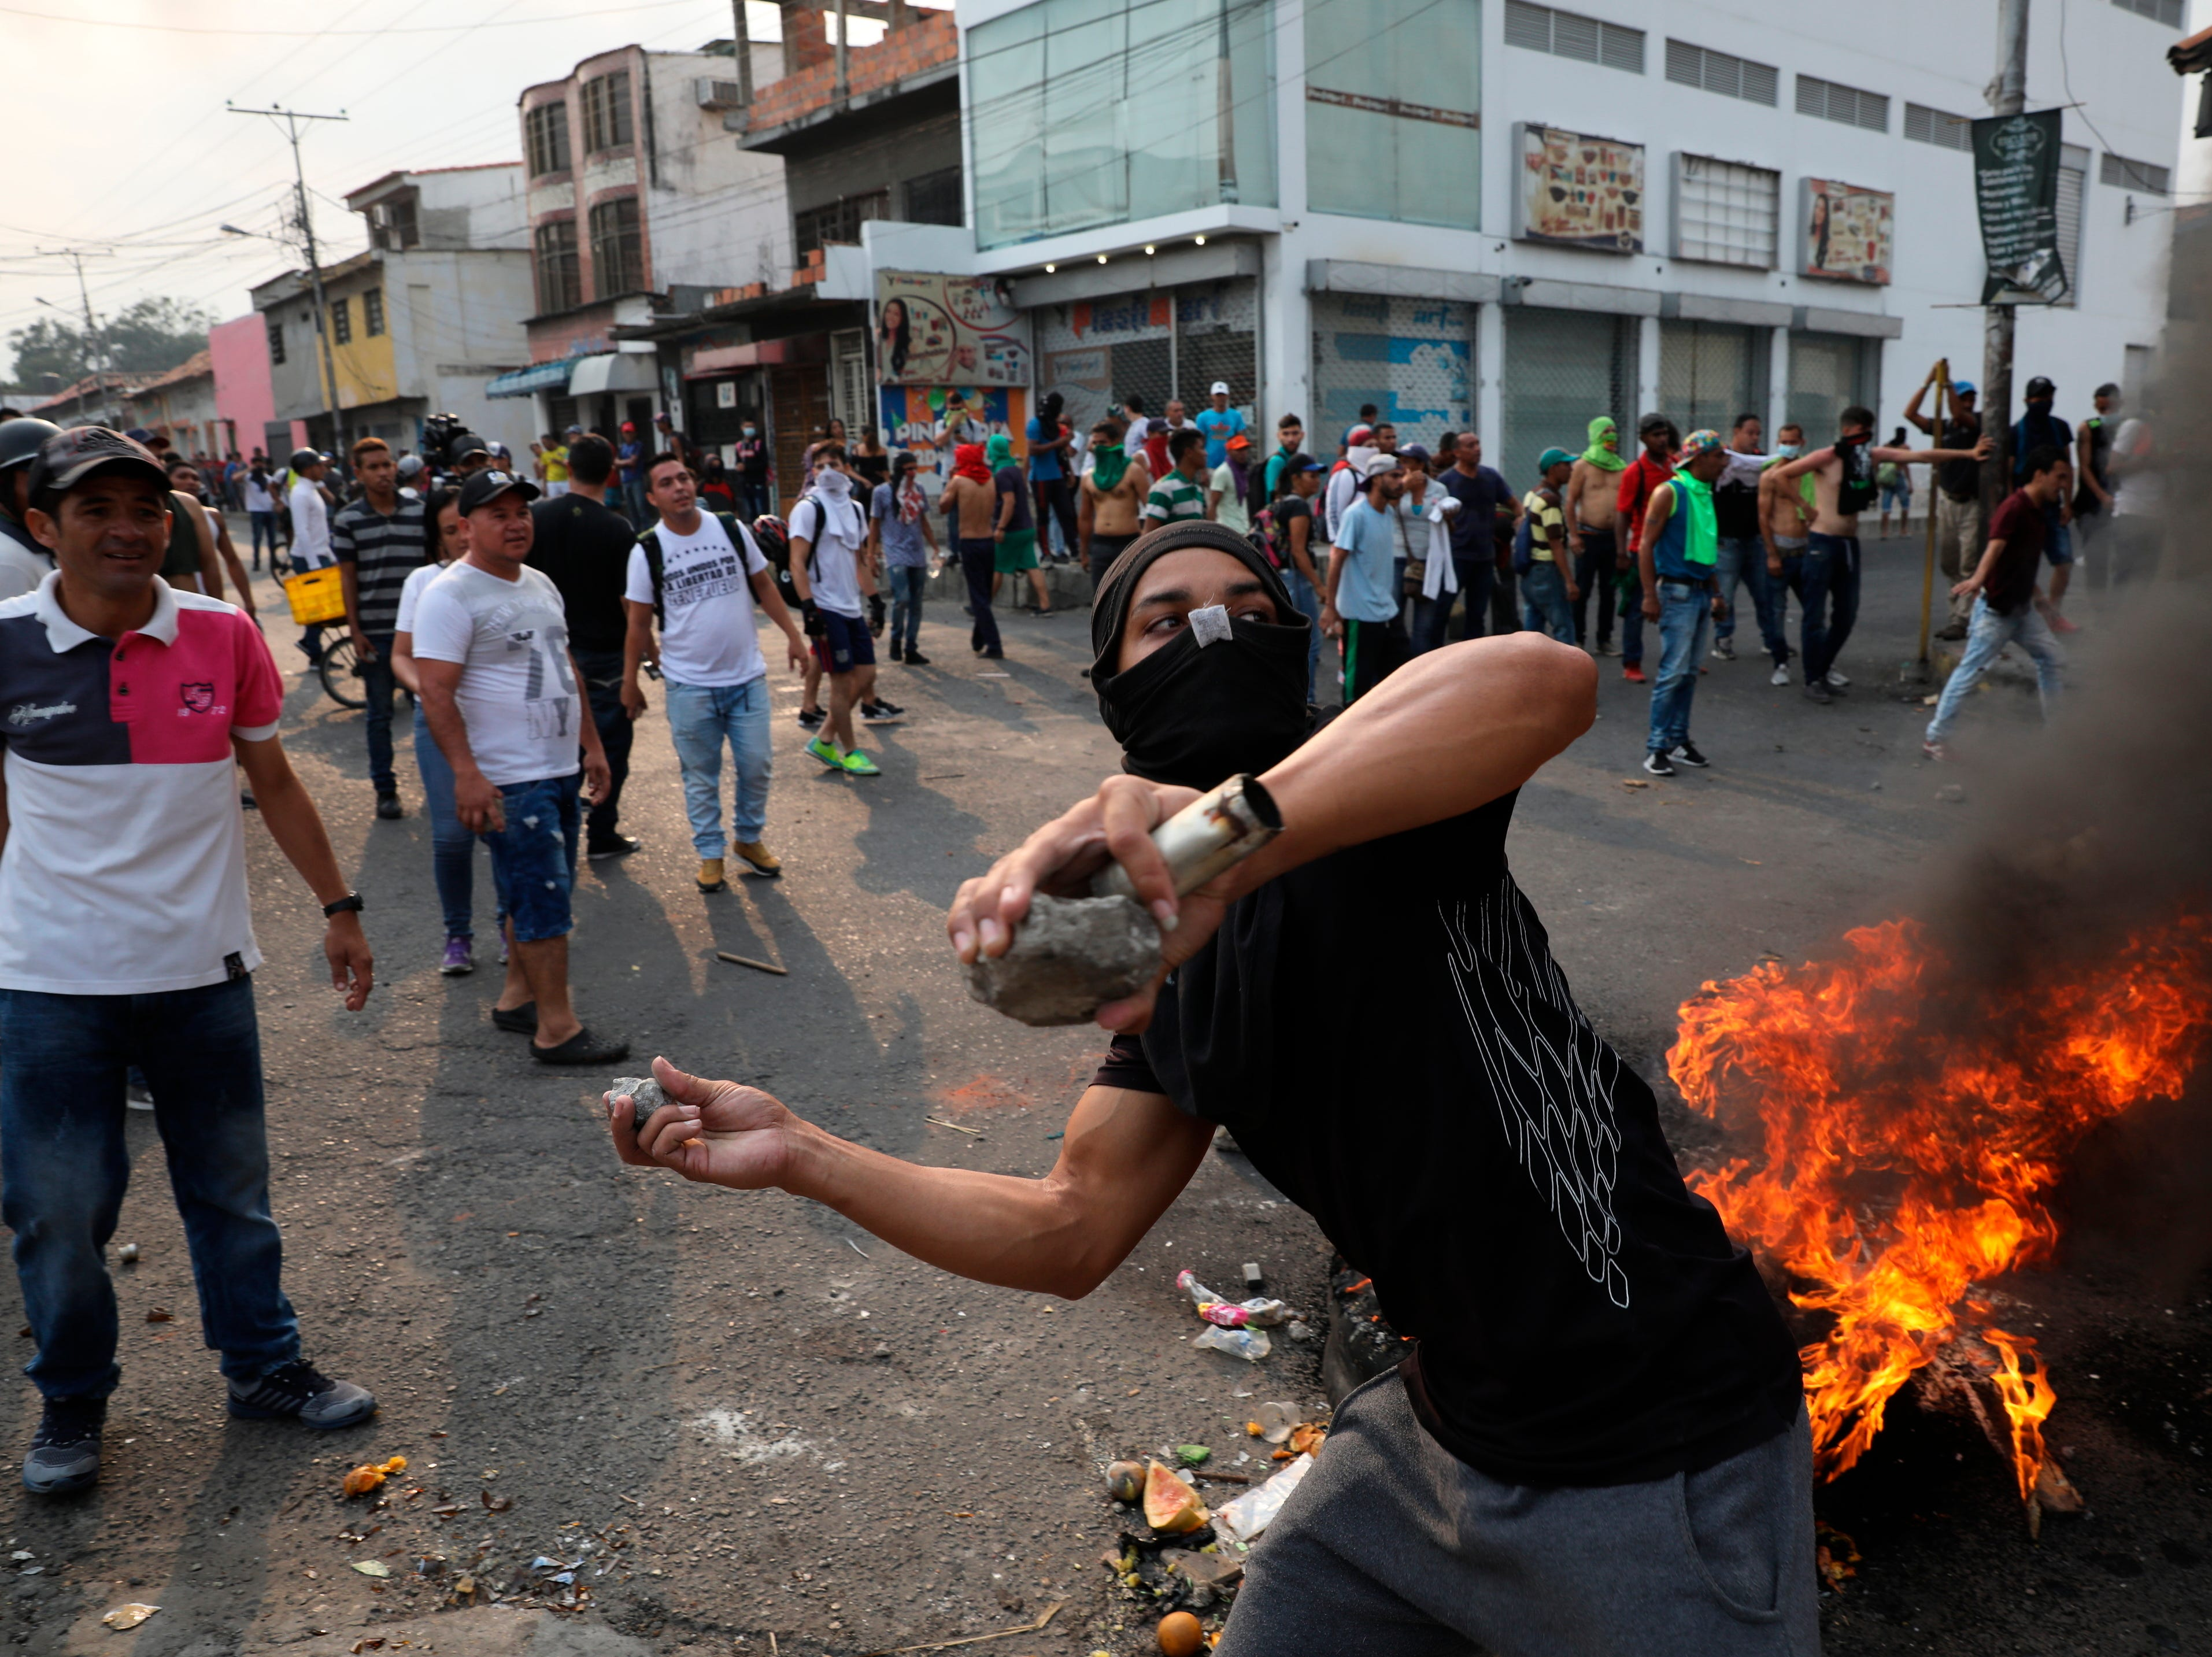 A demonstrator throws rocks during clashes with the Bolivarian National Guard in Urena, Venezuela, near the border with Colombia, Saturday, Feb. 23, 2019. Venezuela's National Guard fired tear gas on residents clearing a barricaded border bridge between Venezuela and Colombia on Saturday, heightening tensions over blocked humanitarian aid that opposition leader Juan Guaido has vowed to bring into the country over objections from President Nicolas Maduro.